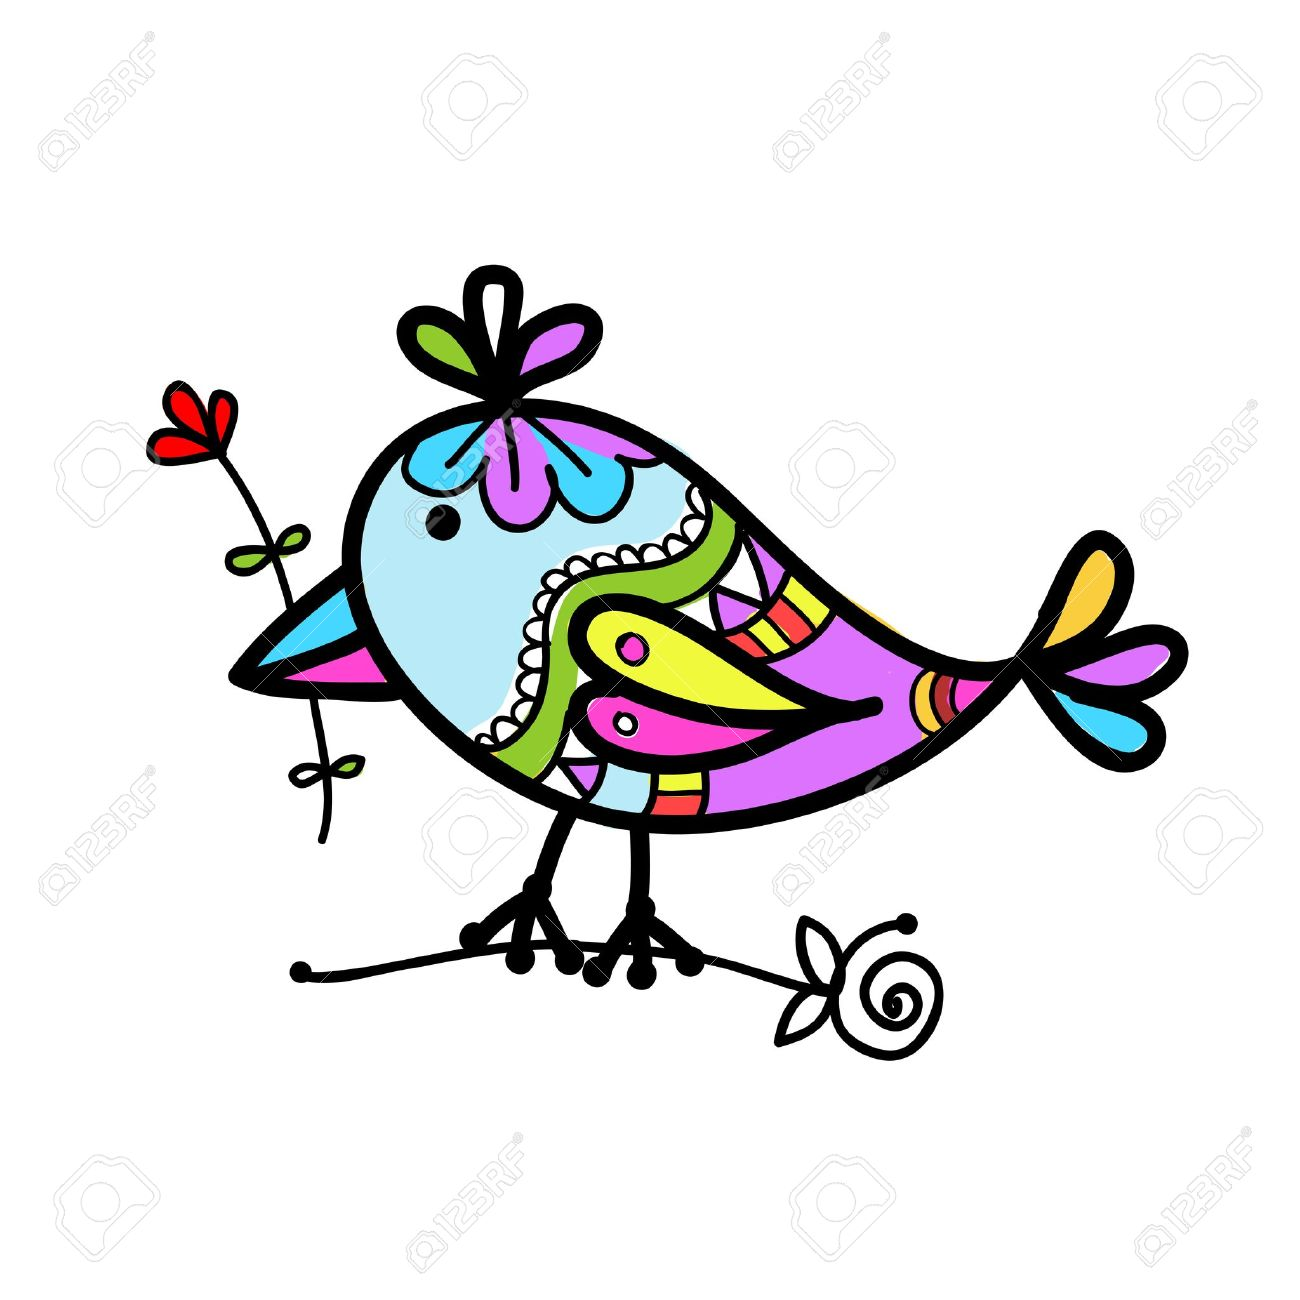 Colorful bird clipart.